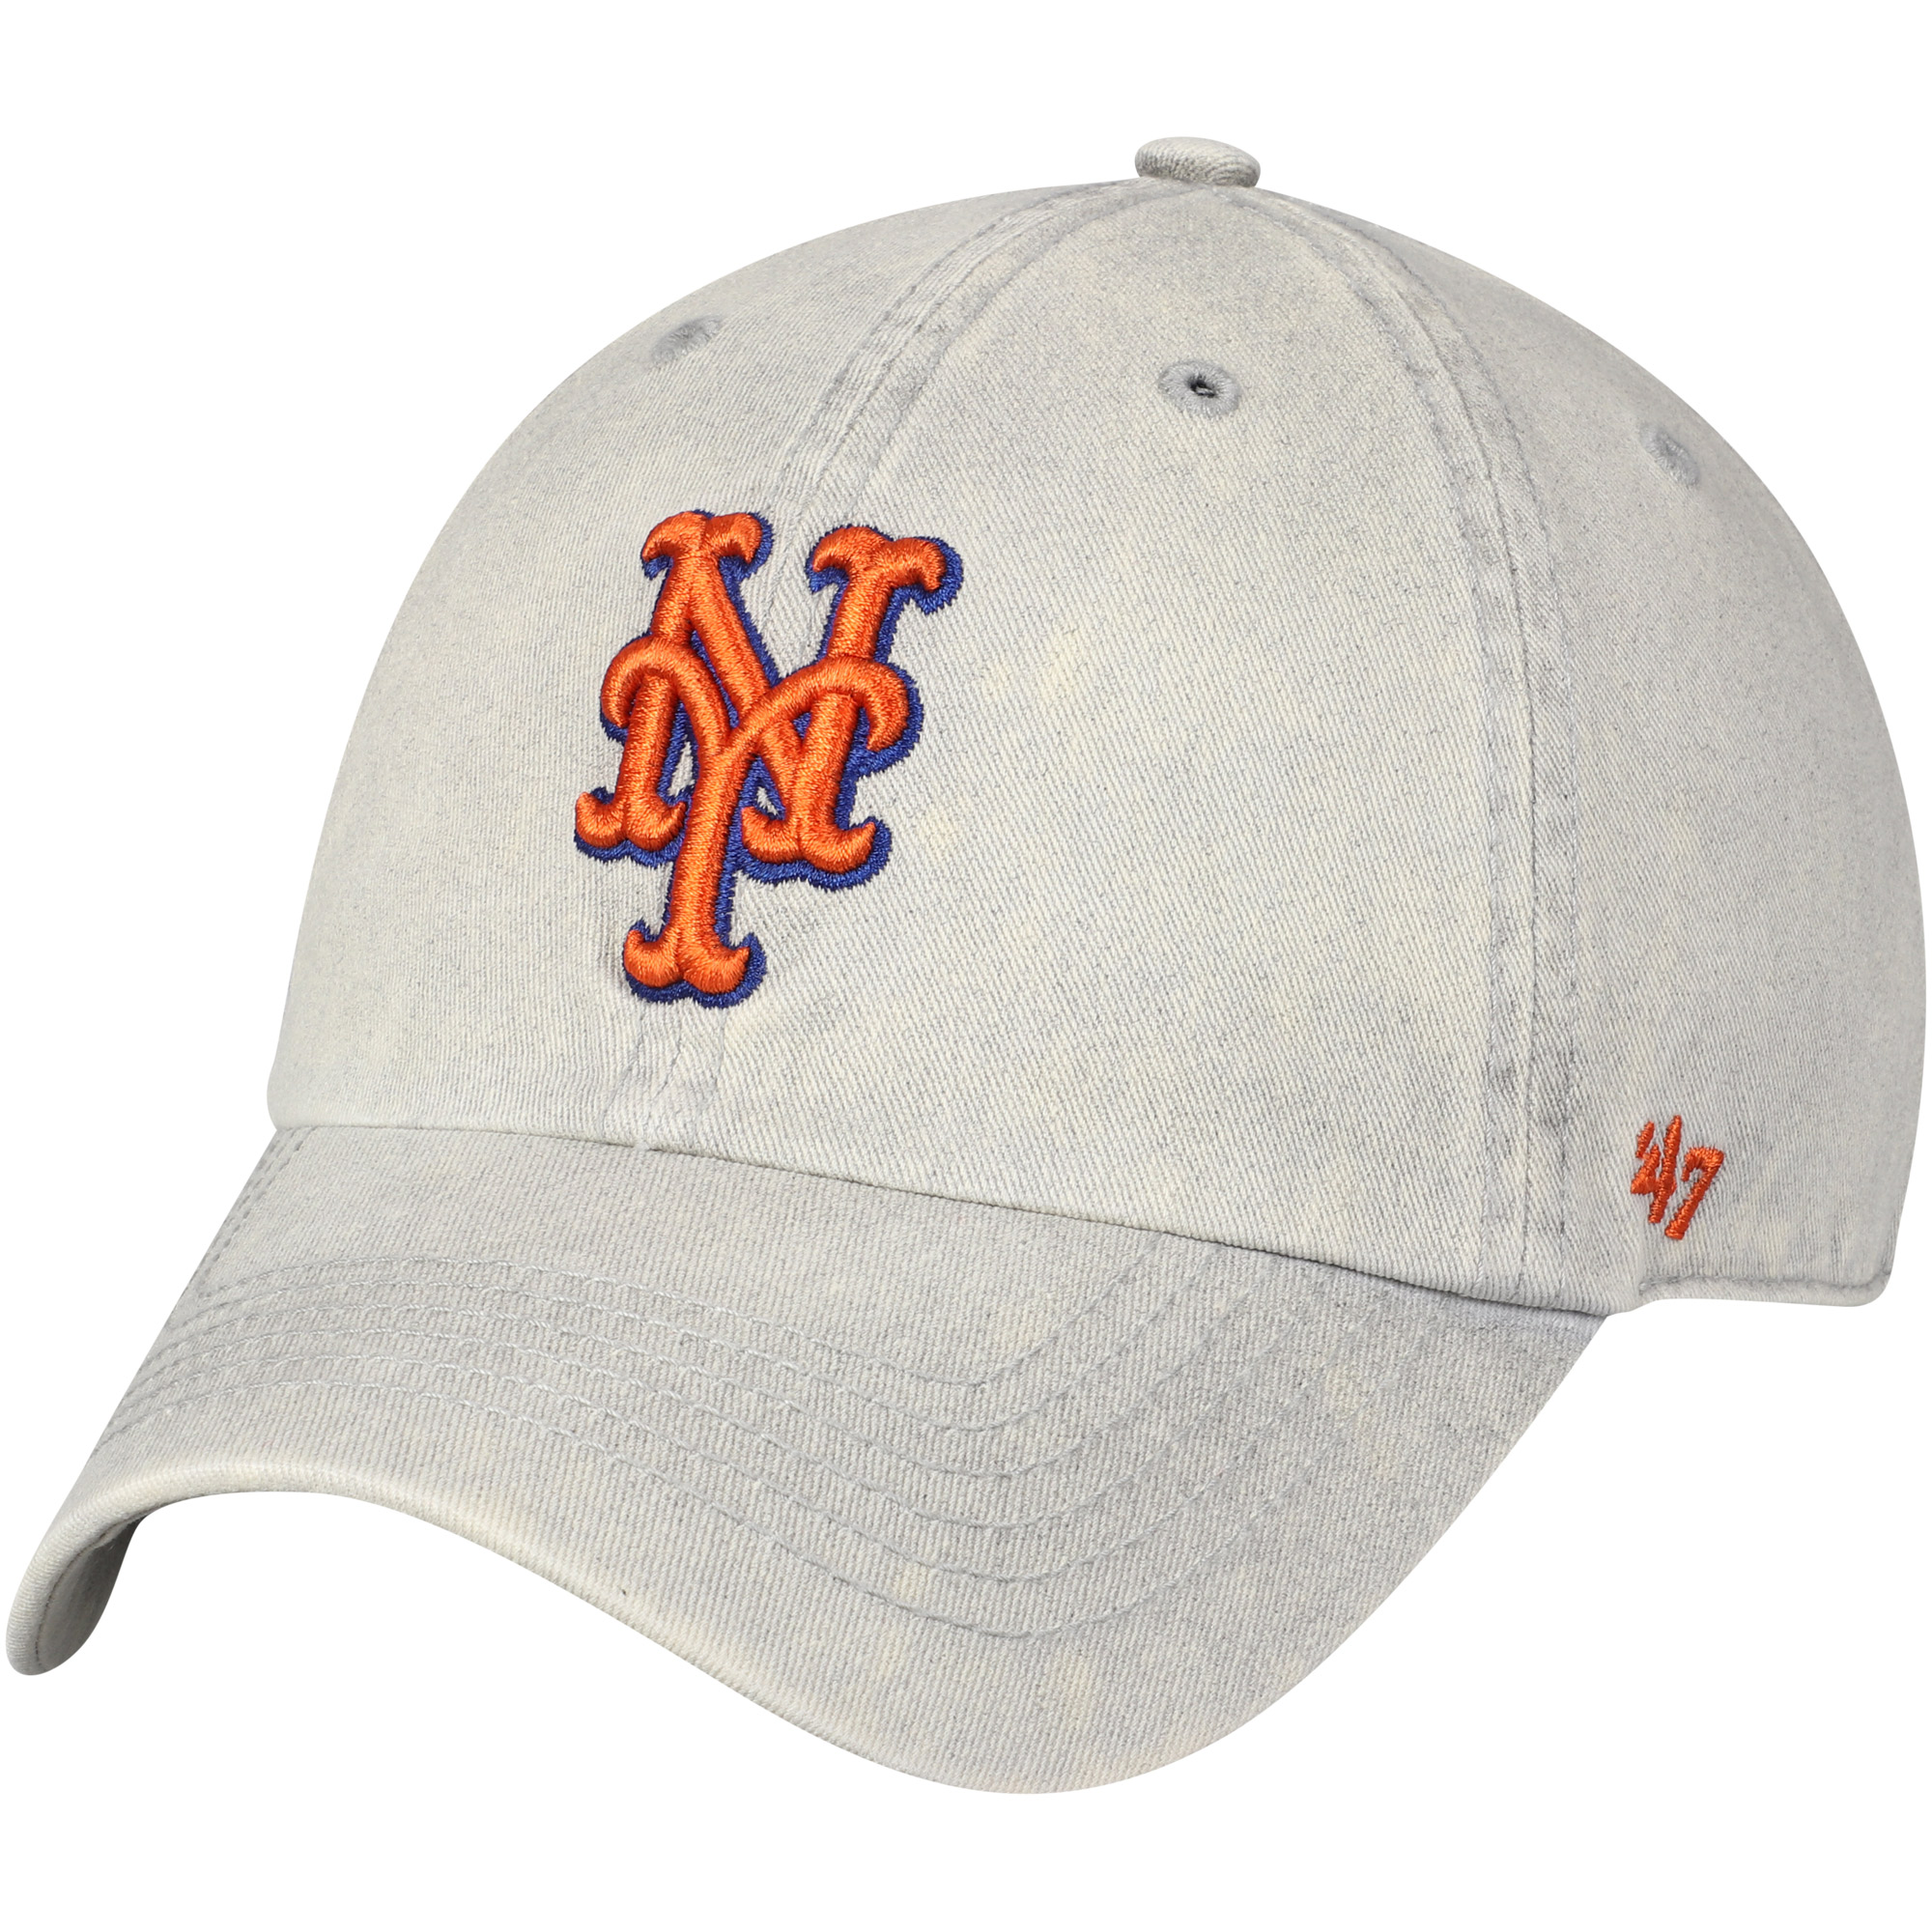 New York Mets '47 Cement Clean Up Adjustable Hat - Gray - OSFA